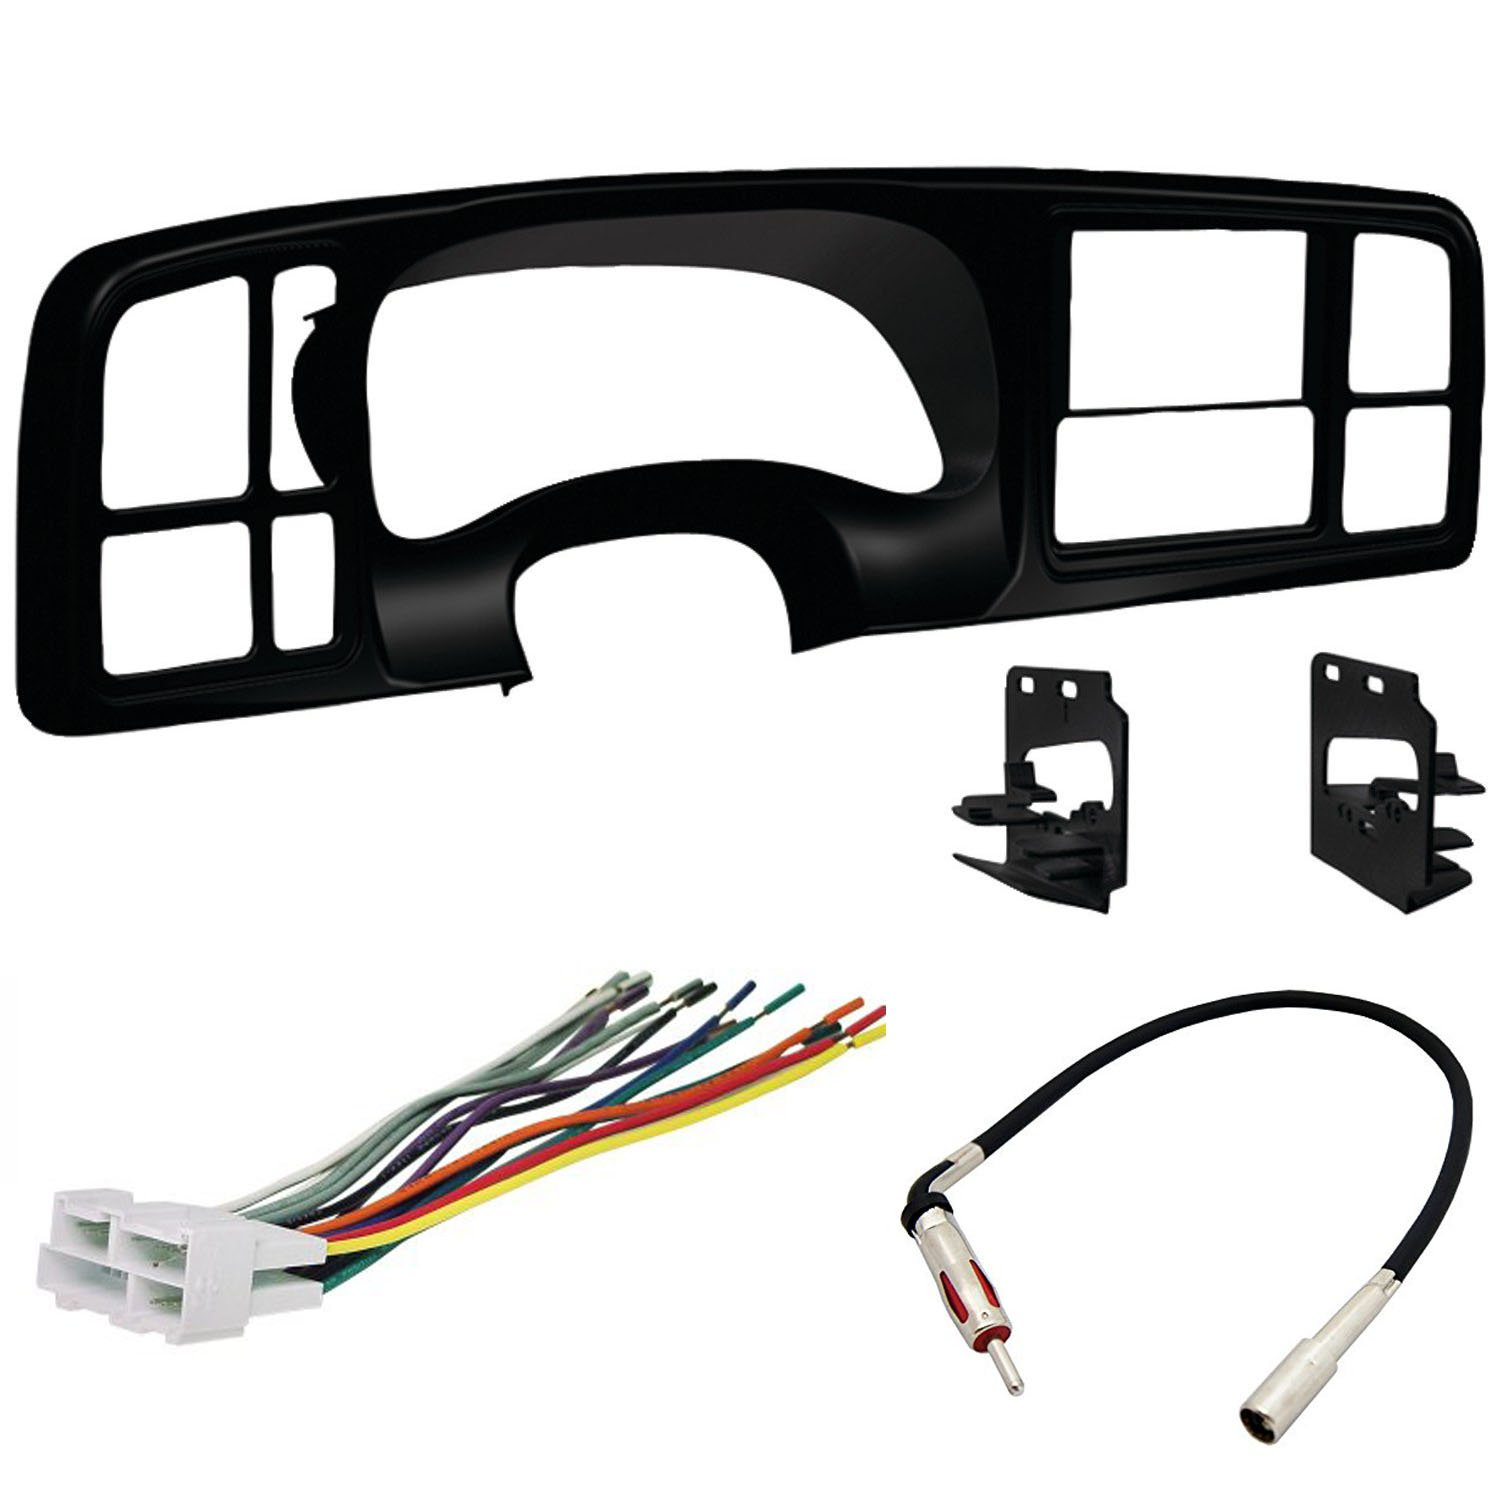 Double DIN Dash Kit - Wiring Harness - Radio Antenna Adapter for 1999 - 2002 GM Full-Size Trucks/SUV's